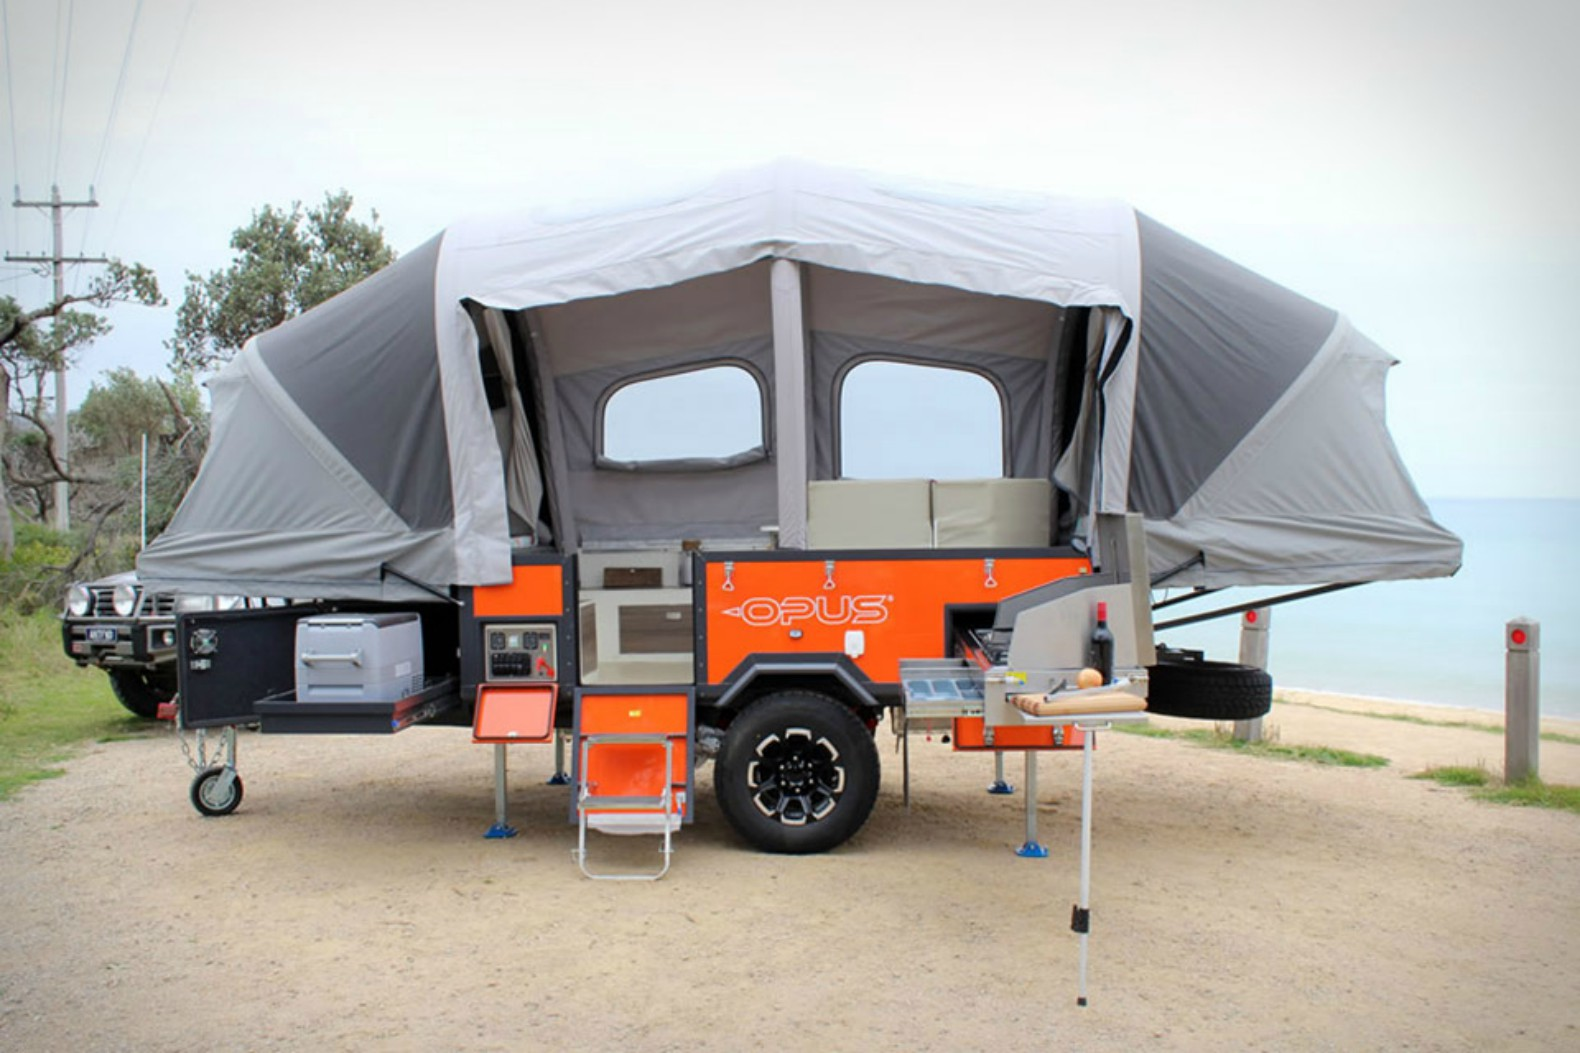 Top 5 Best Pop-Up Campers for First Time RVers